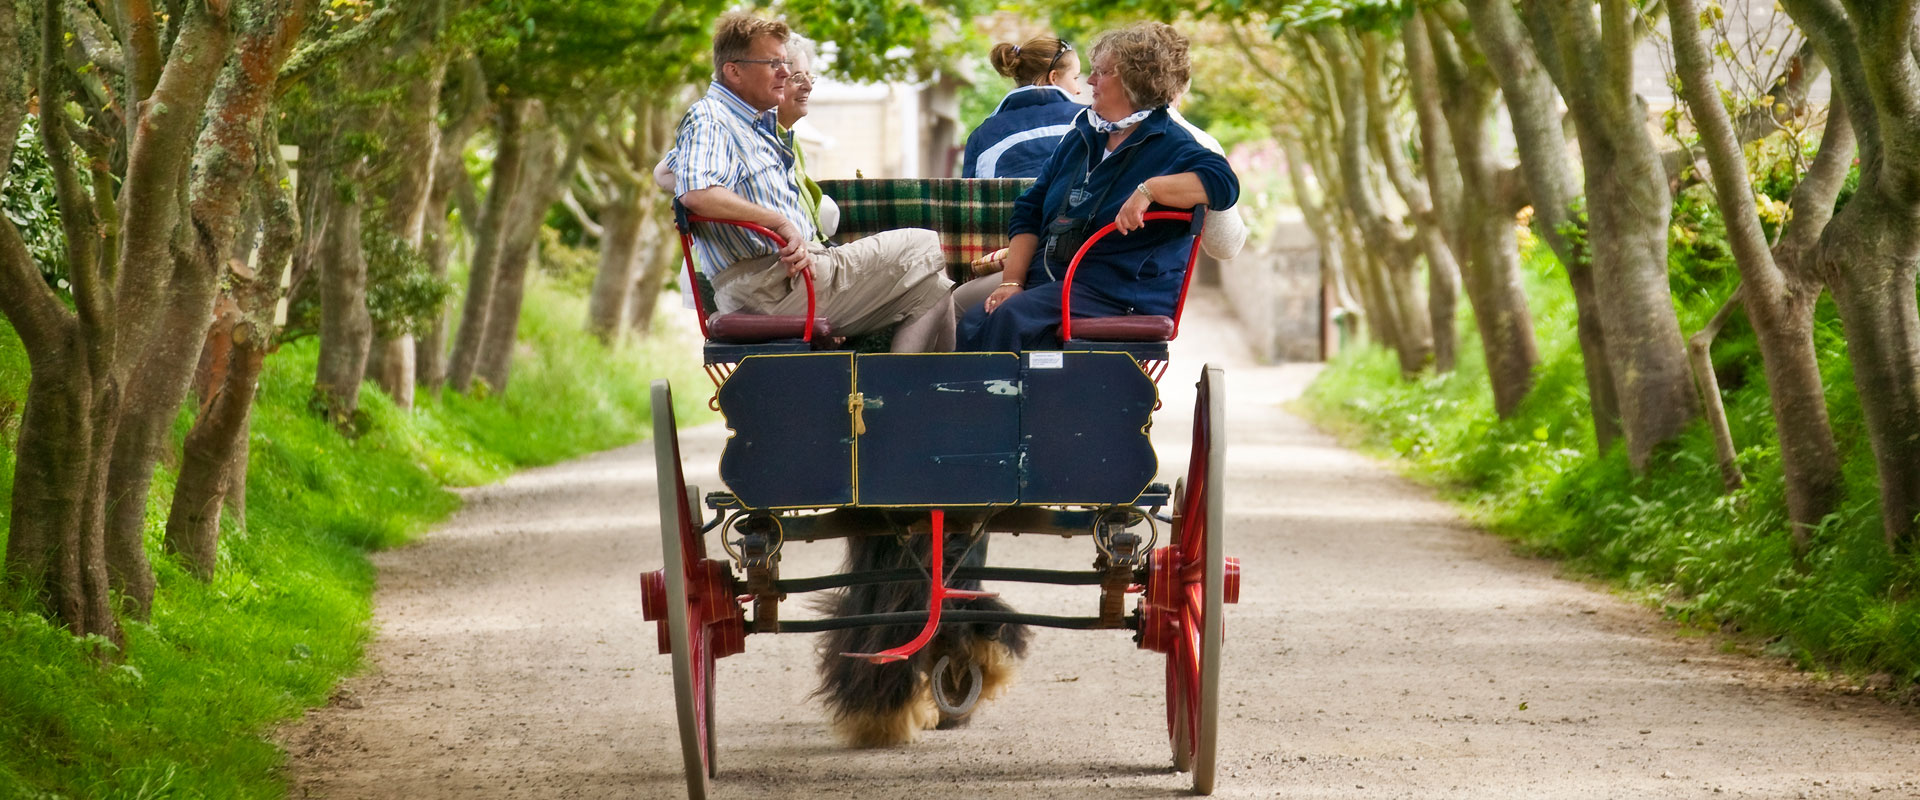 Sark carriage - Images courtesy of VisitGuernsey